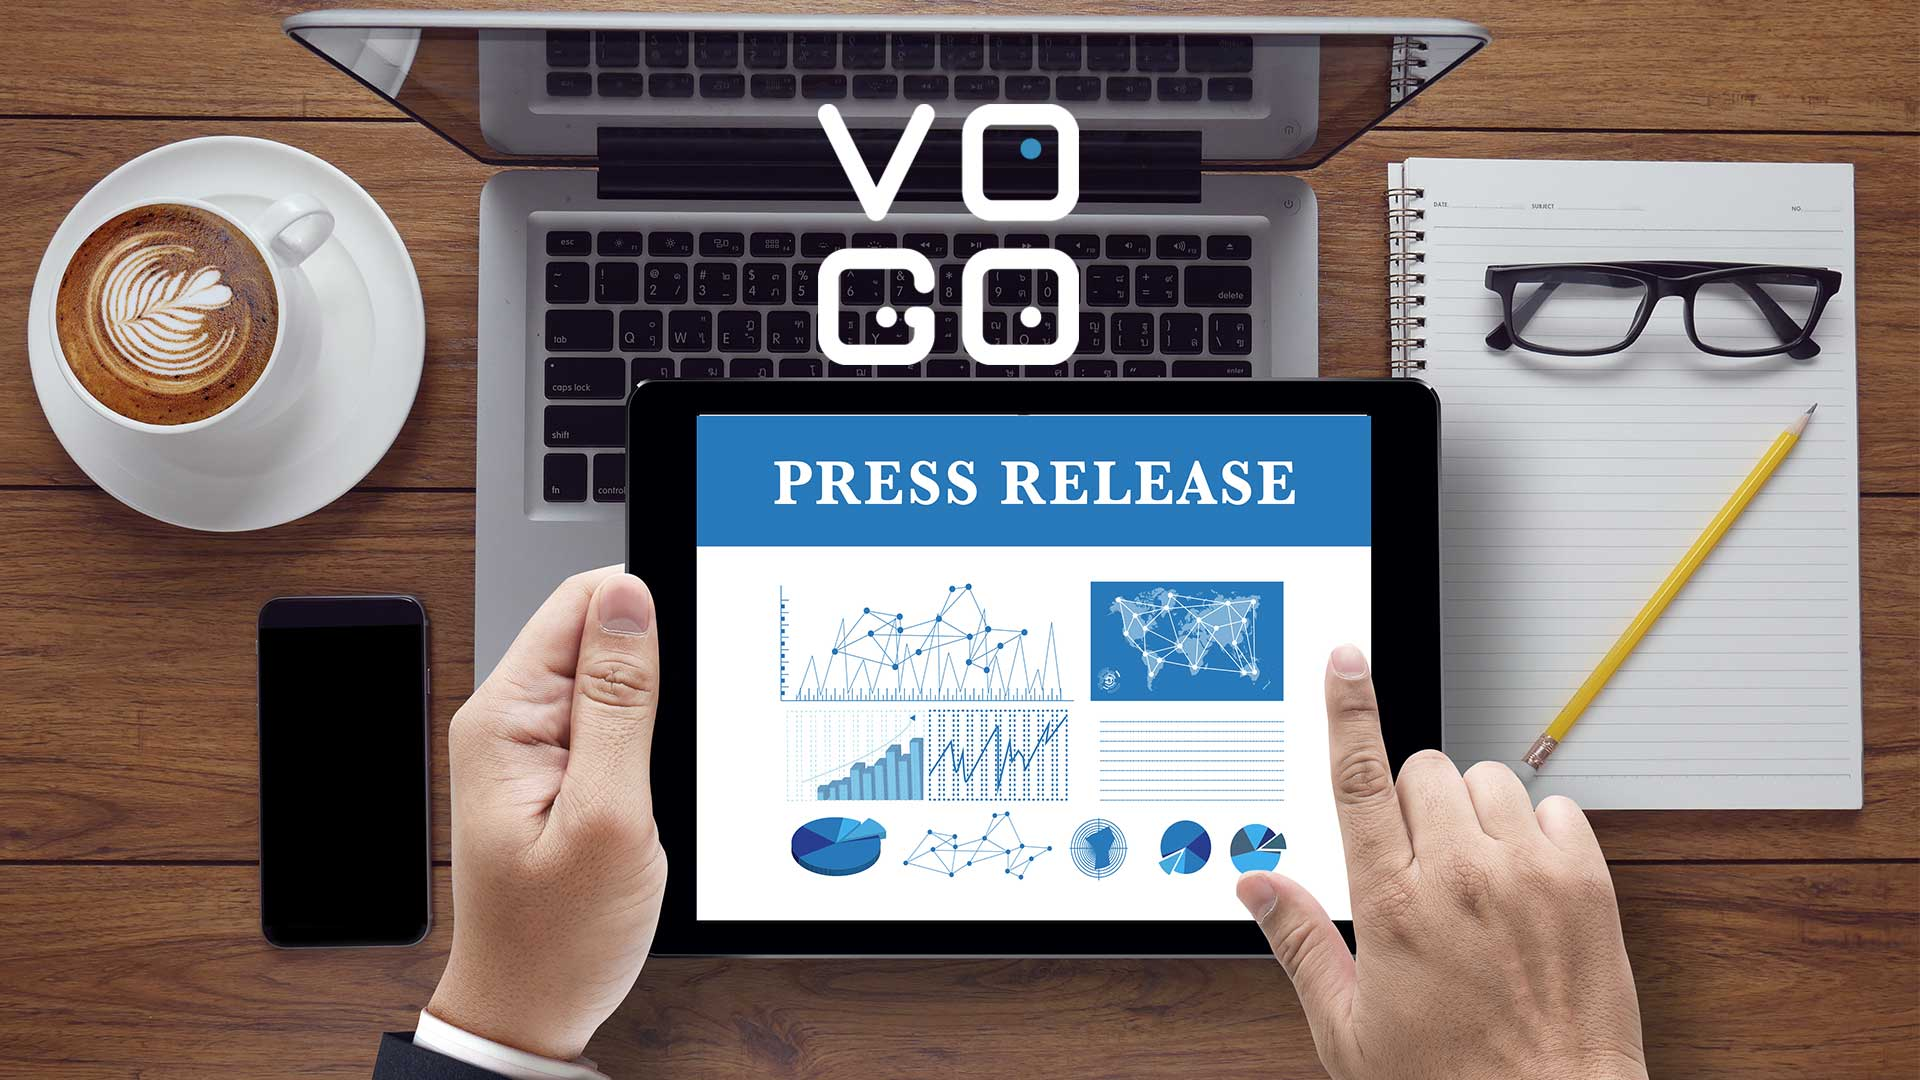 Growth in VOGO's business confirmed in the second half